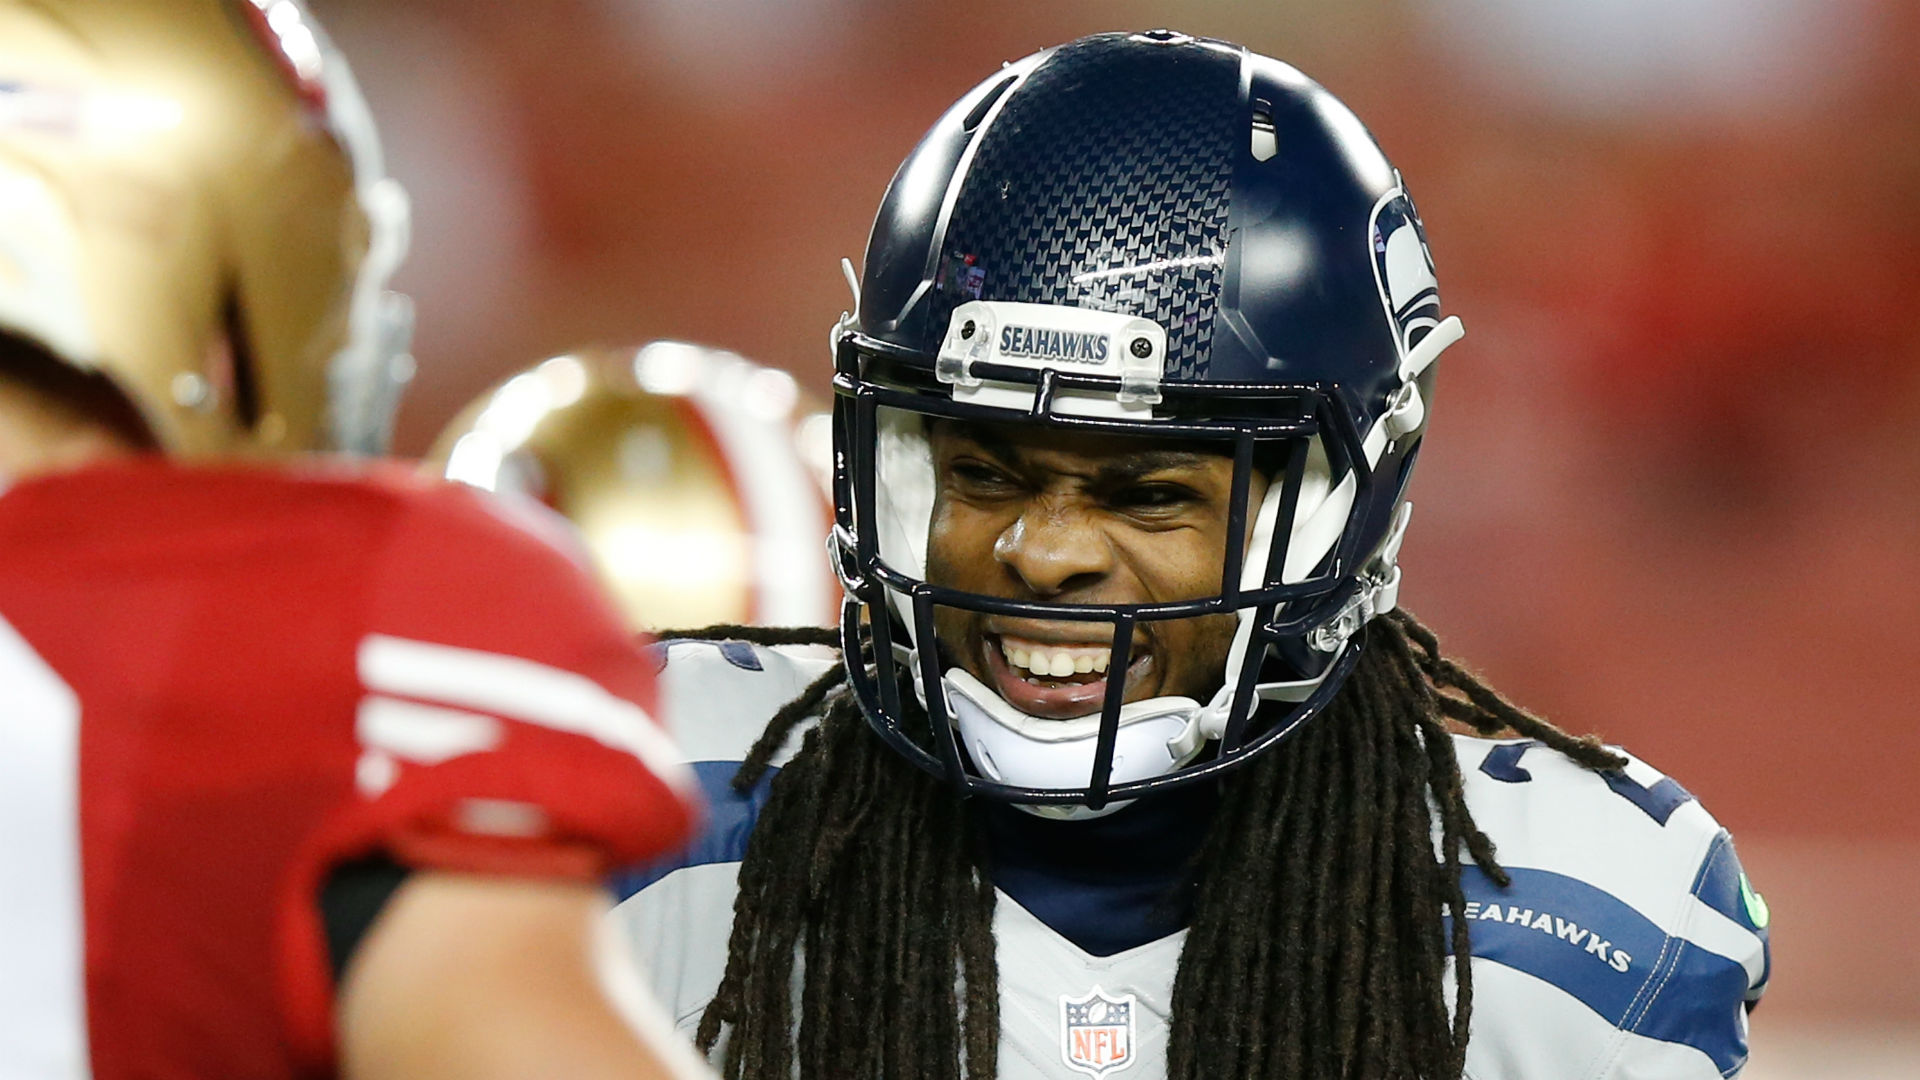 Richard-sherman-072517-getty-ftrjpg_1e17v1a4u5jqe171fpt42sjpbp